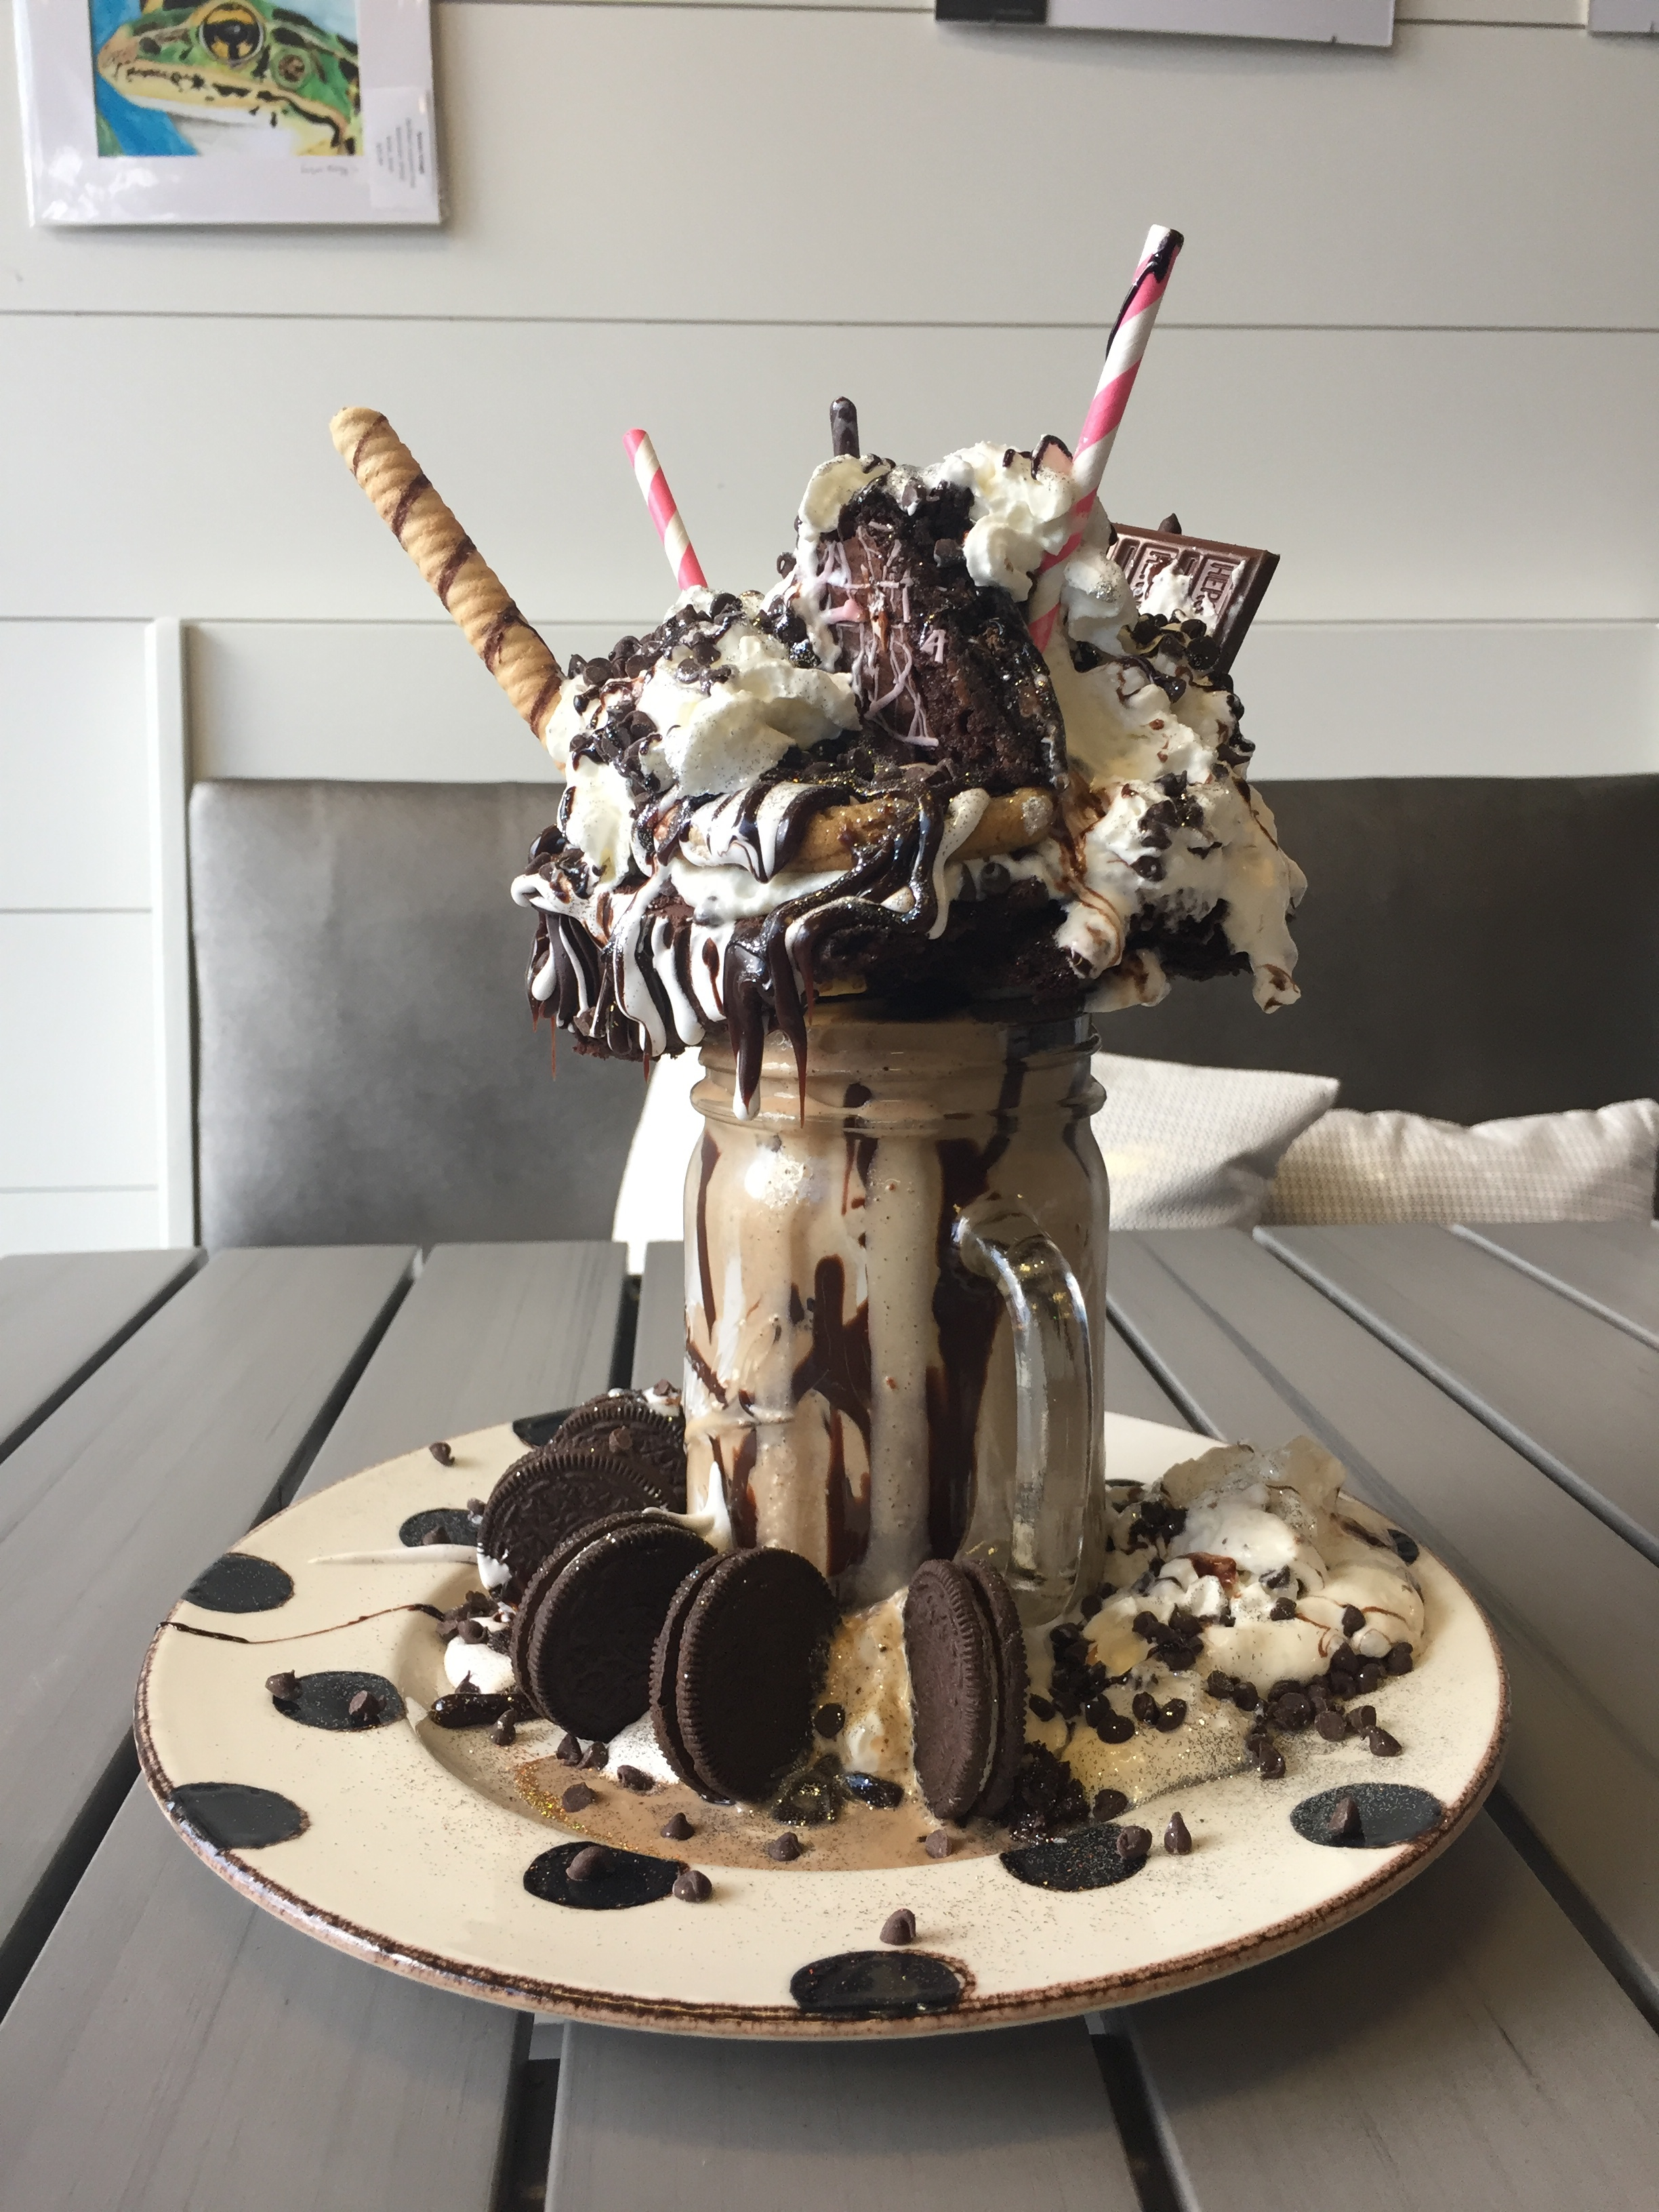 Cream & Sugar Cafe Scoops up some Freakishly Large Shakes. Image property of The Entertaining House